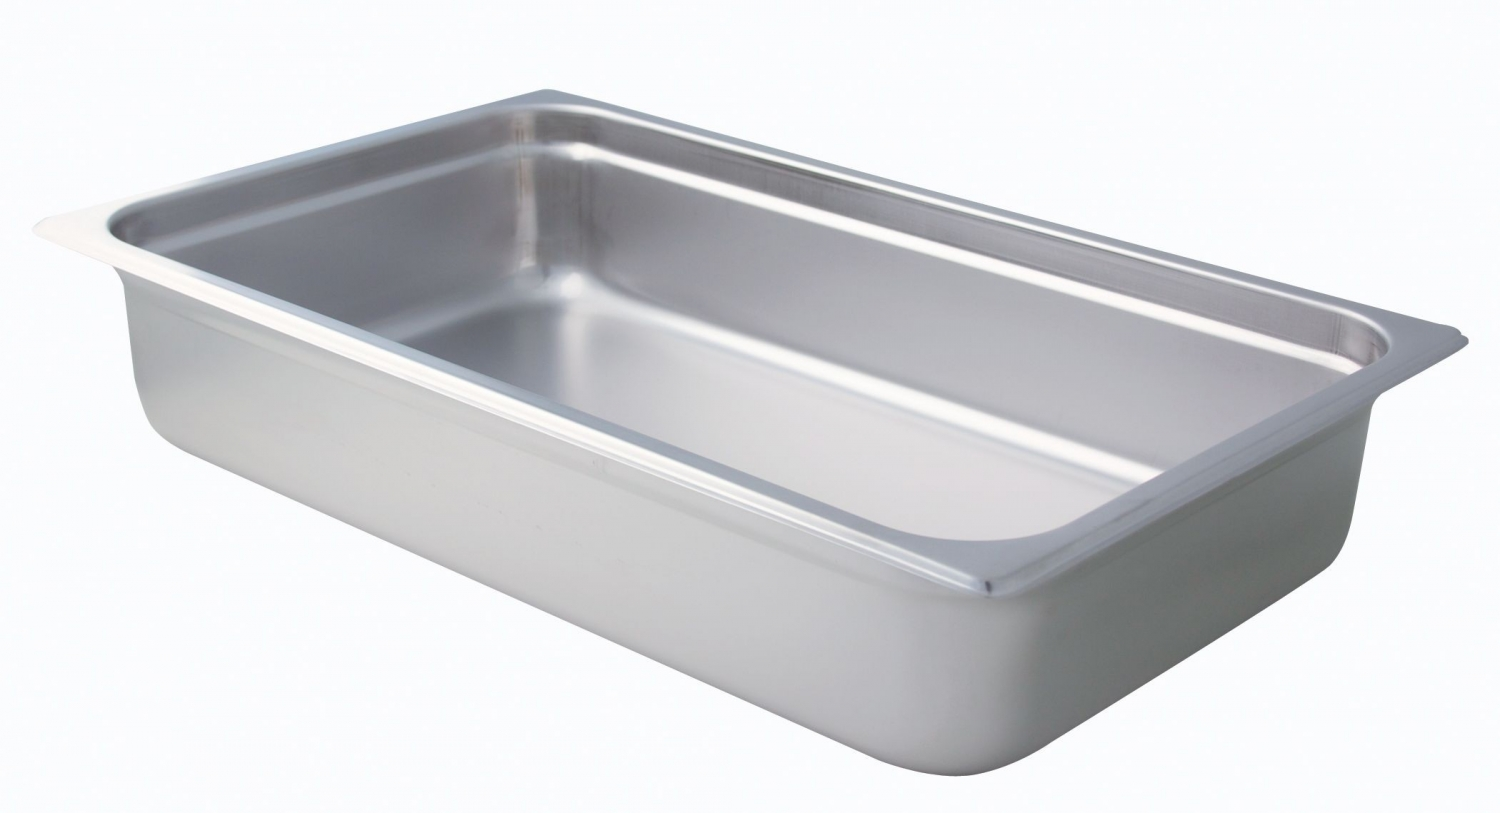 Johnson Rose 57104 Full Size Steam Table Pan 4-1/4 Qt.